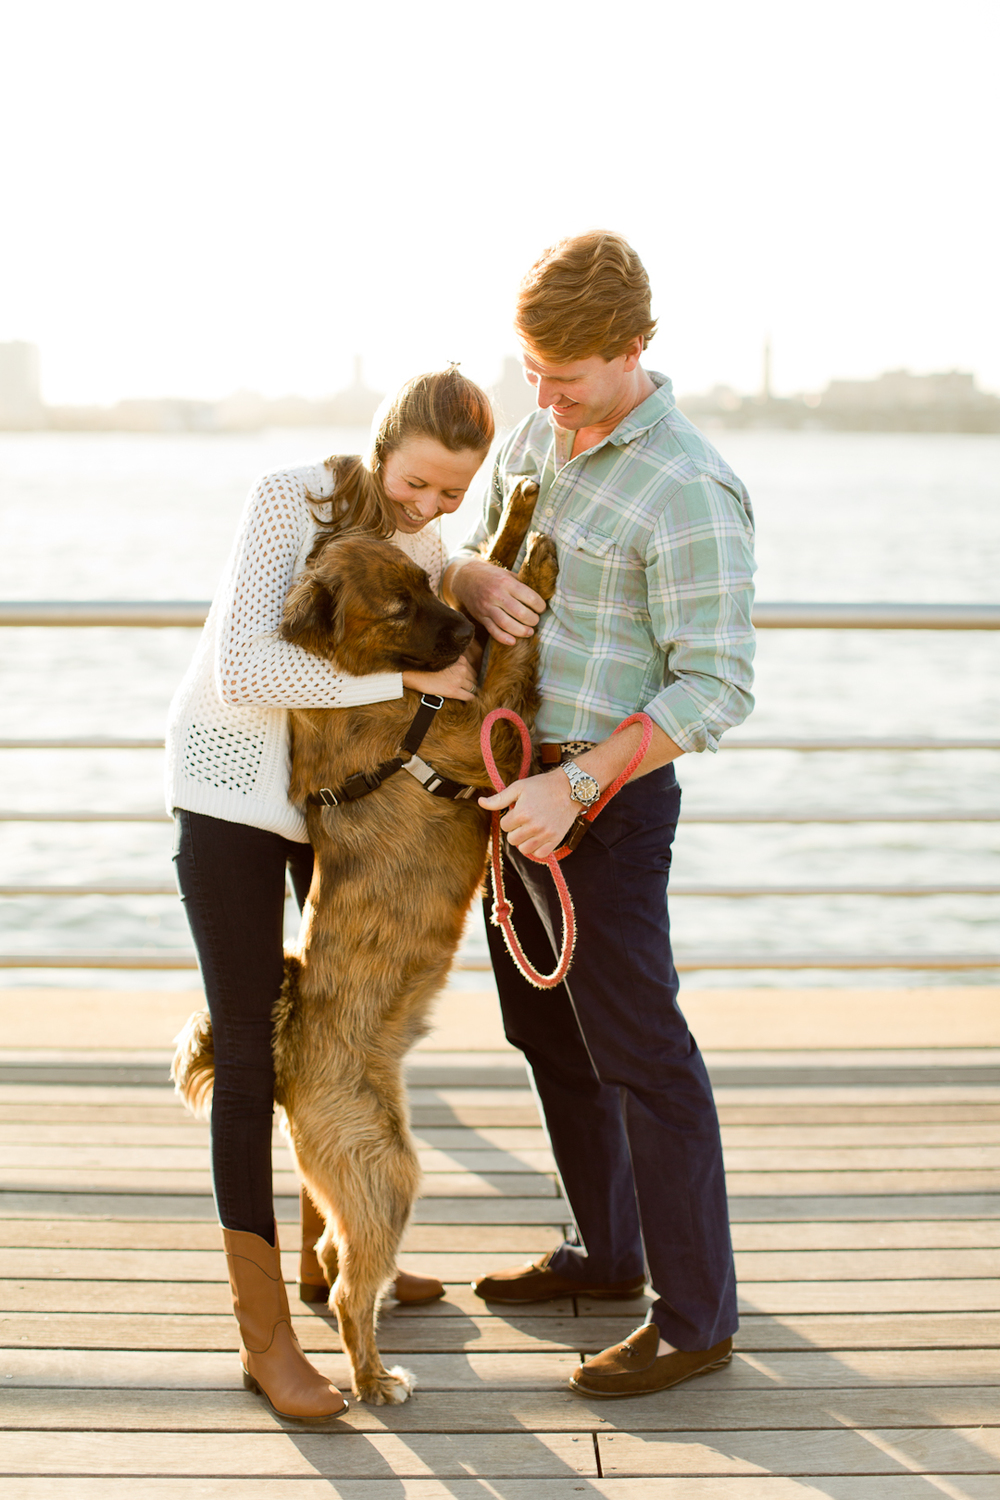 Melissa Kruse Photography - Megan & Tyler West Village Engagement Photos-97.jpg